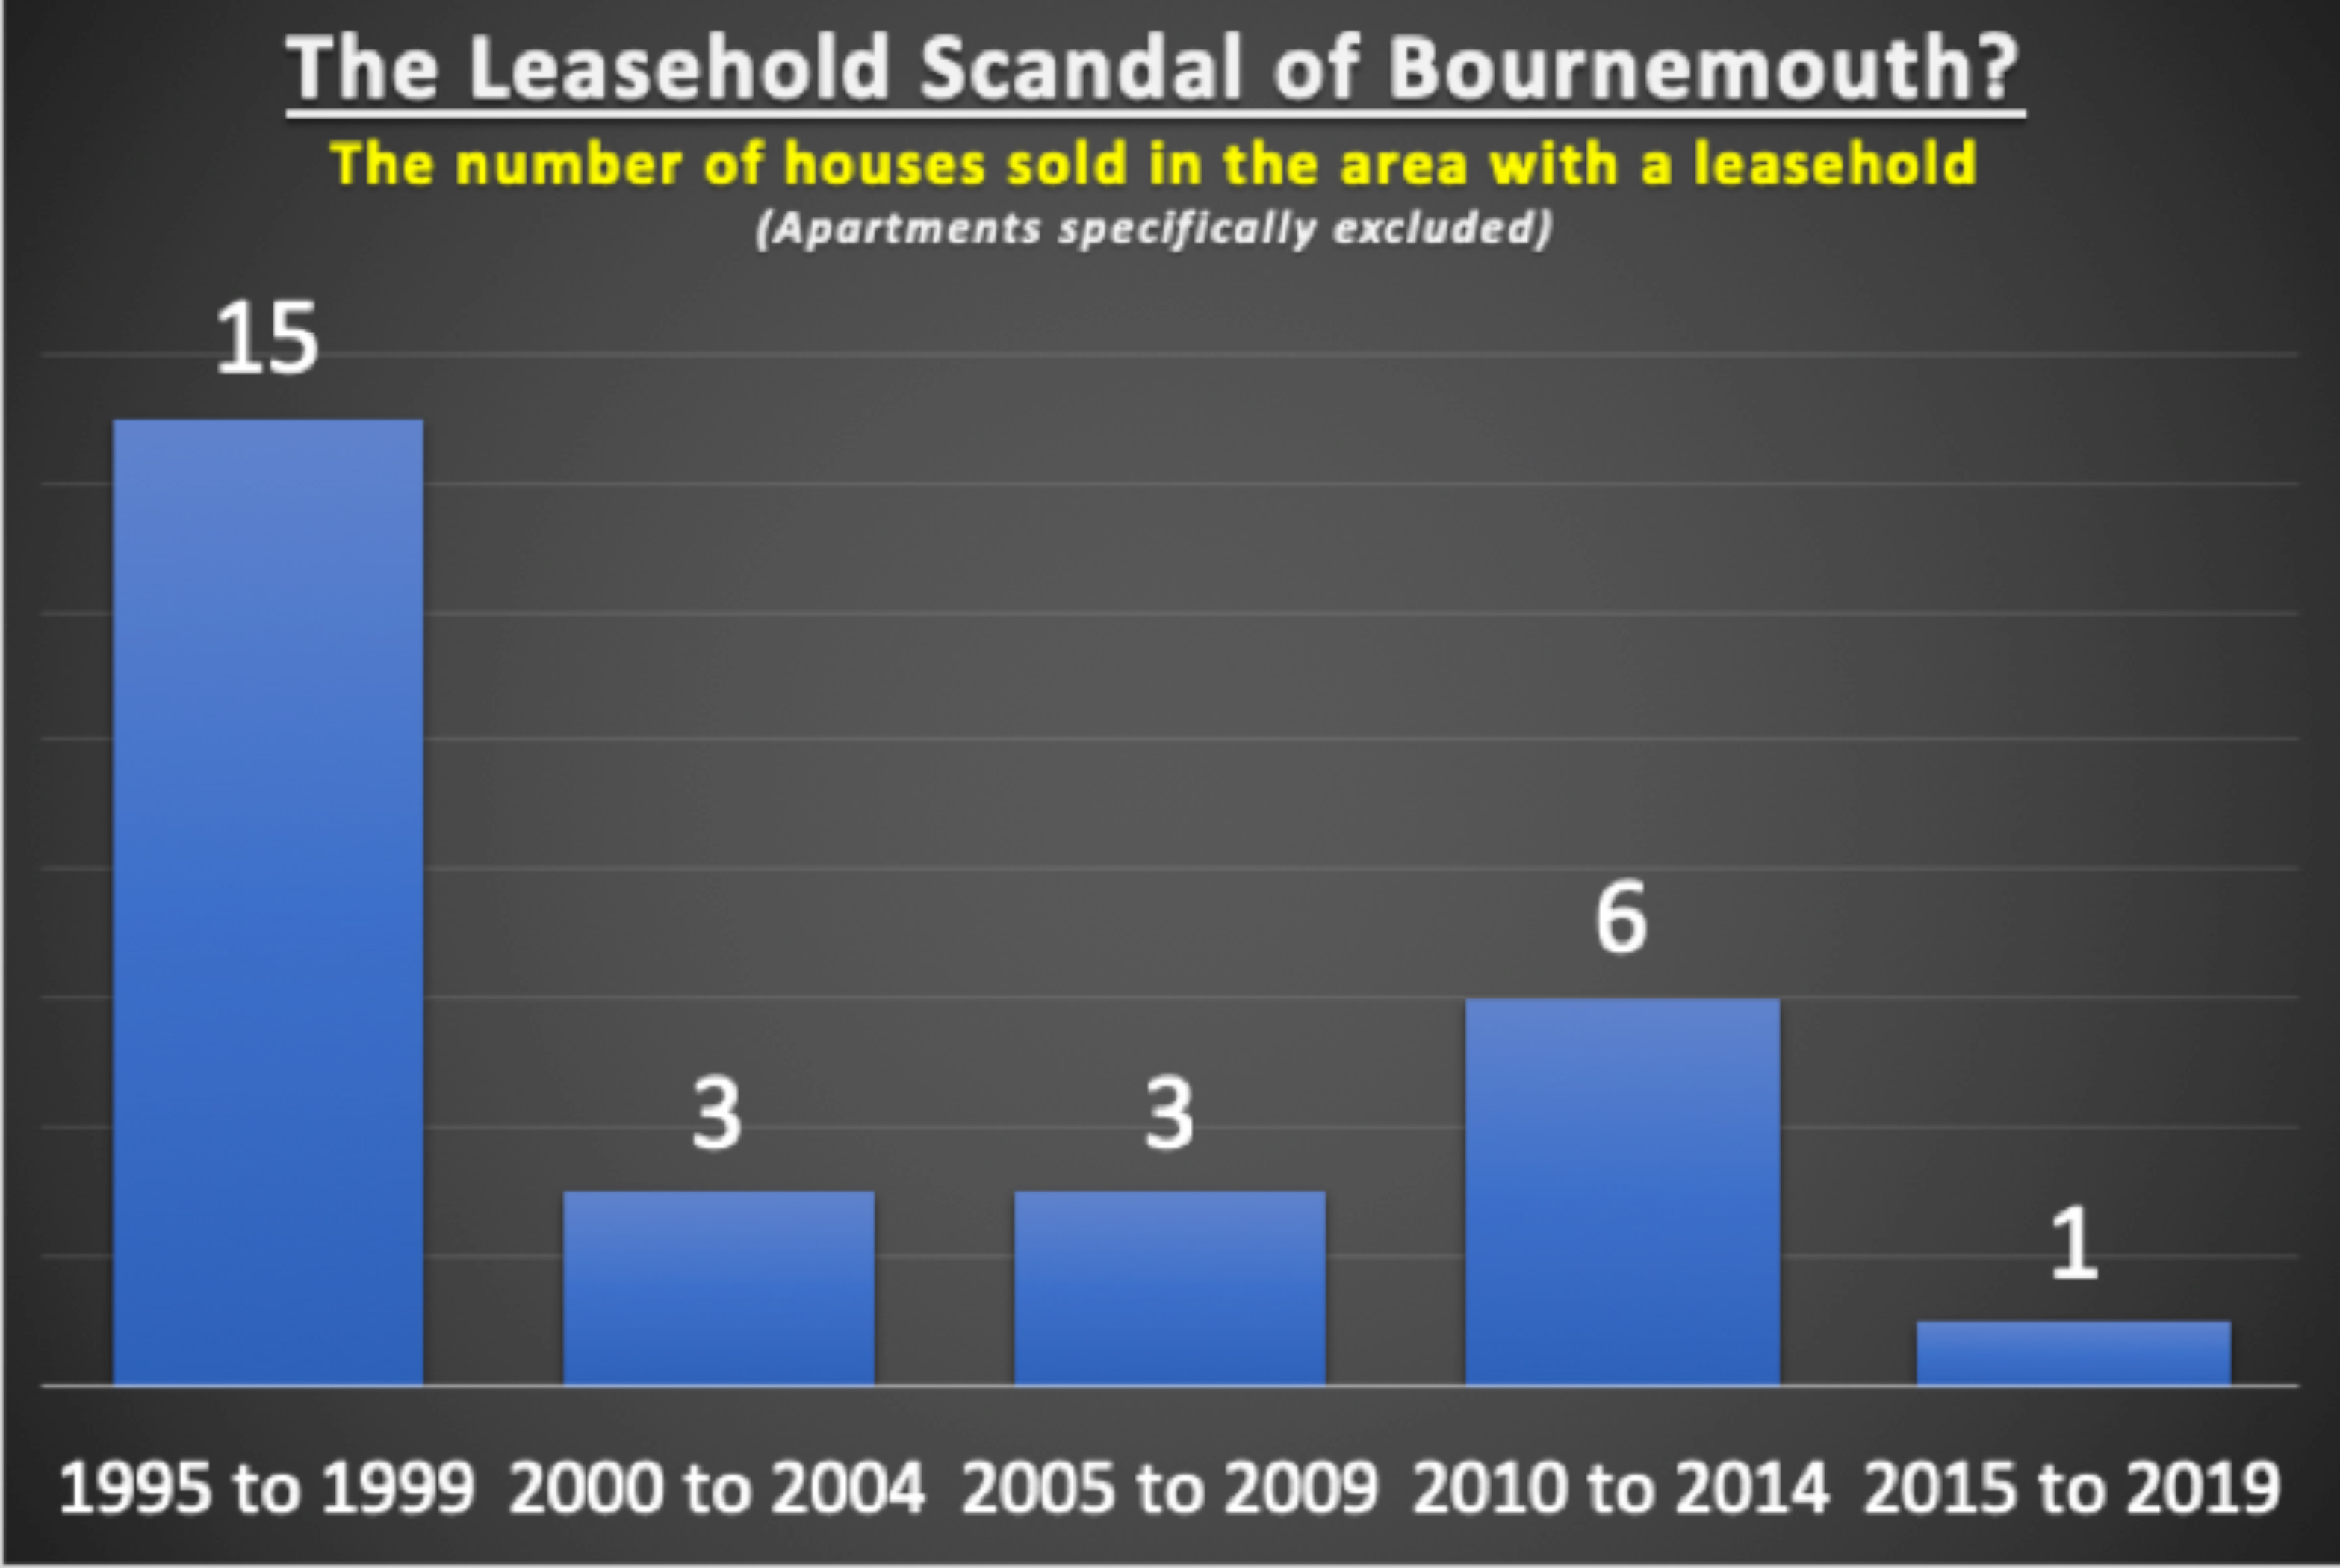 A graph showing the number of houses in Bournemouth that are leasehold